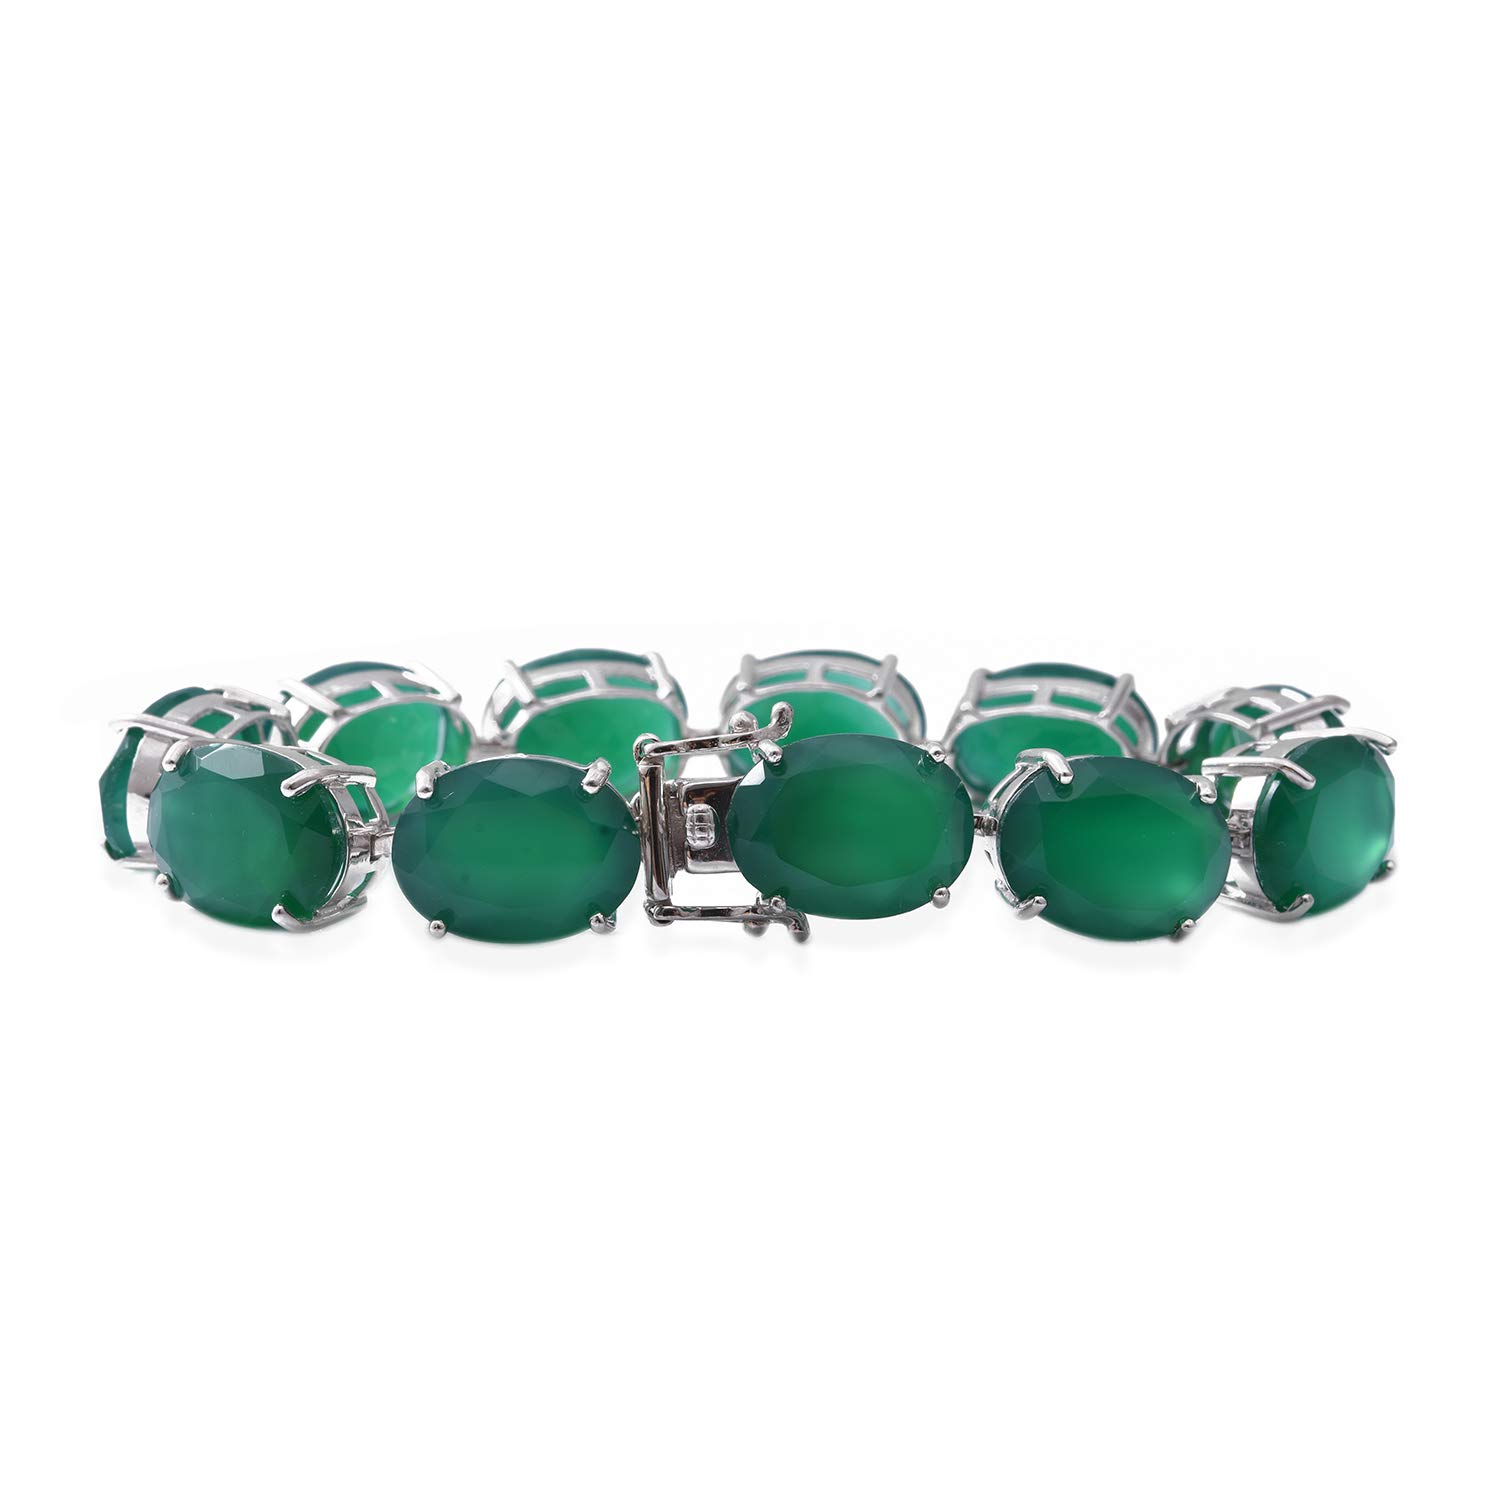 Silver Earrings Bracelet Set 925 Sterling Silver Oval Green Onyx Jewelry Gift for Women Size 7.5 Cttw 84.2